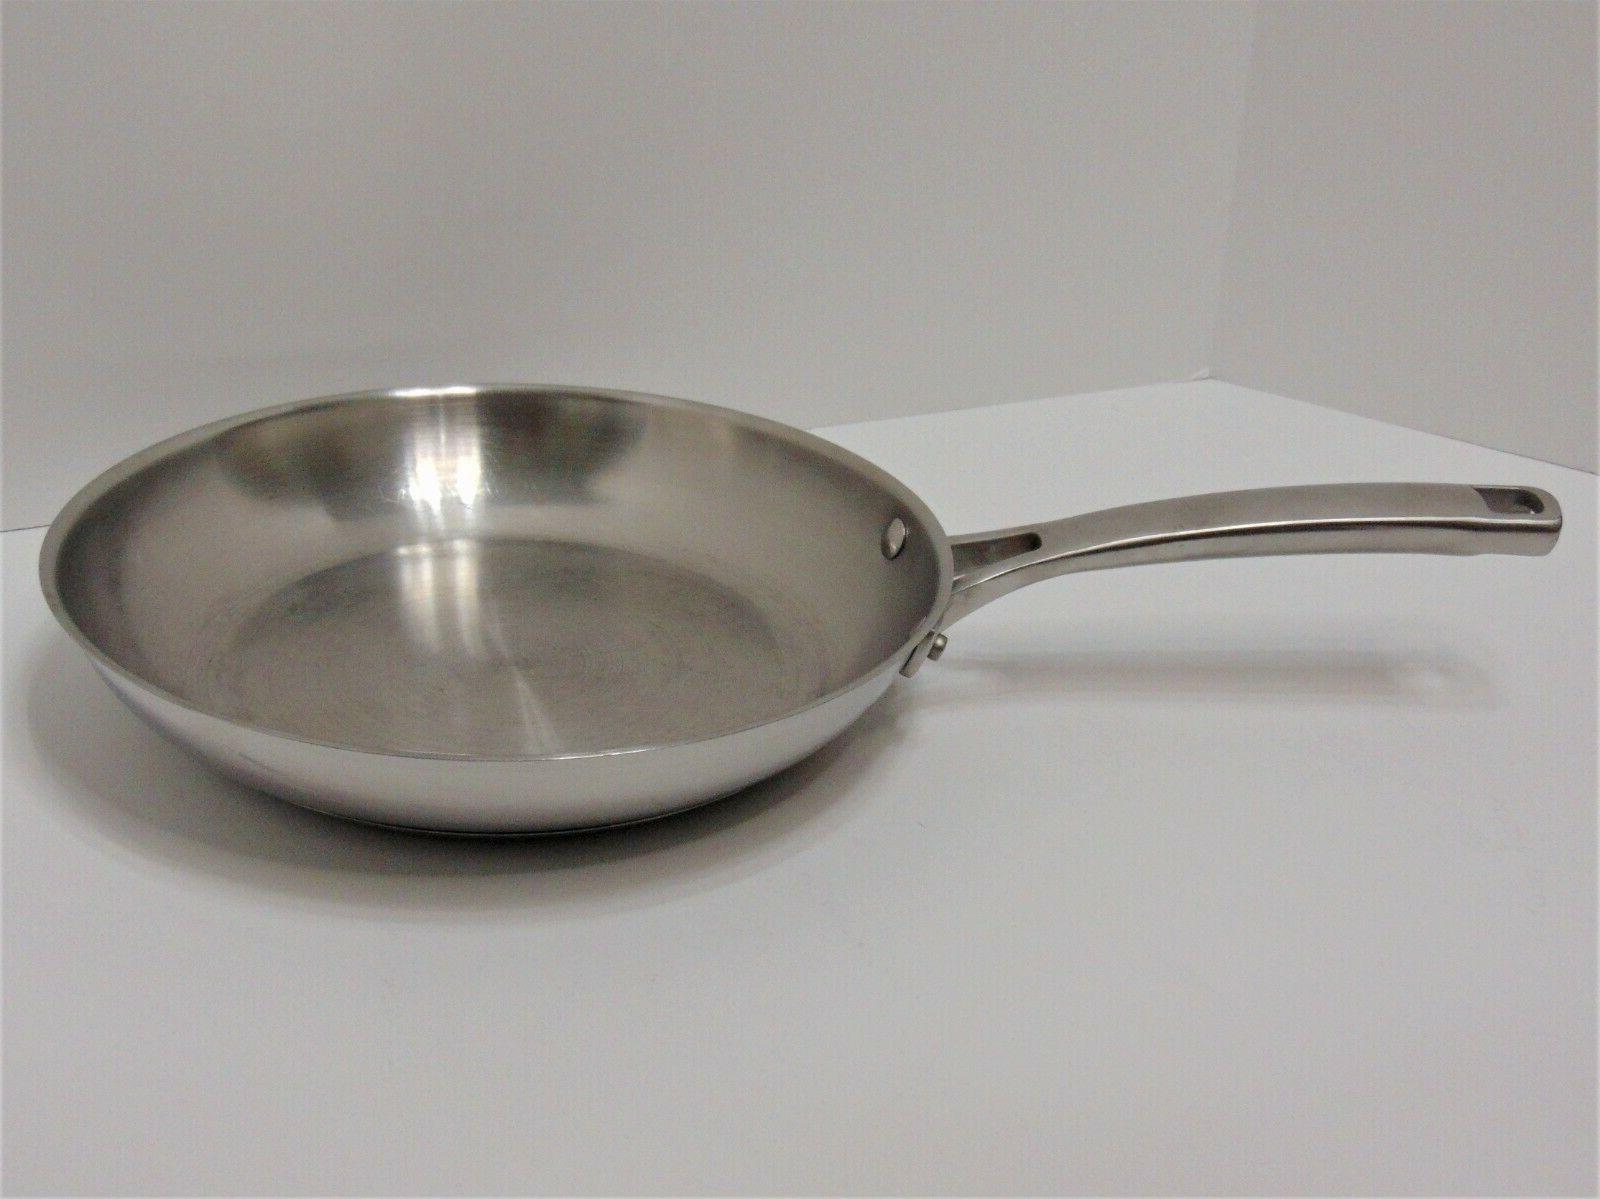 stainless steel 10 inch tri ply skillet